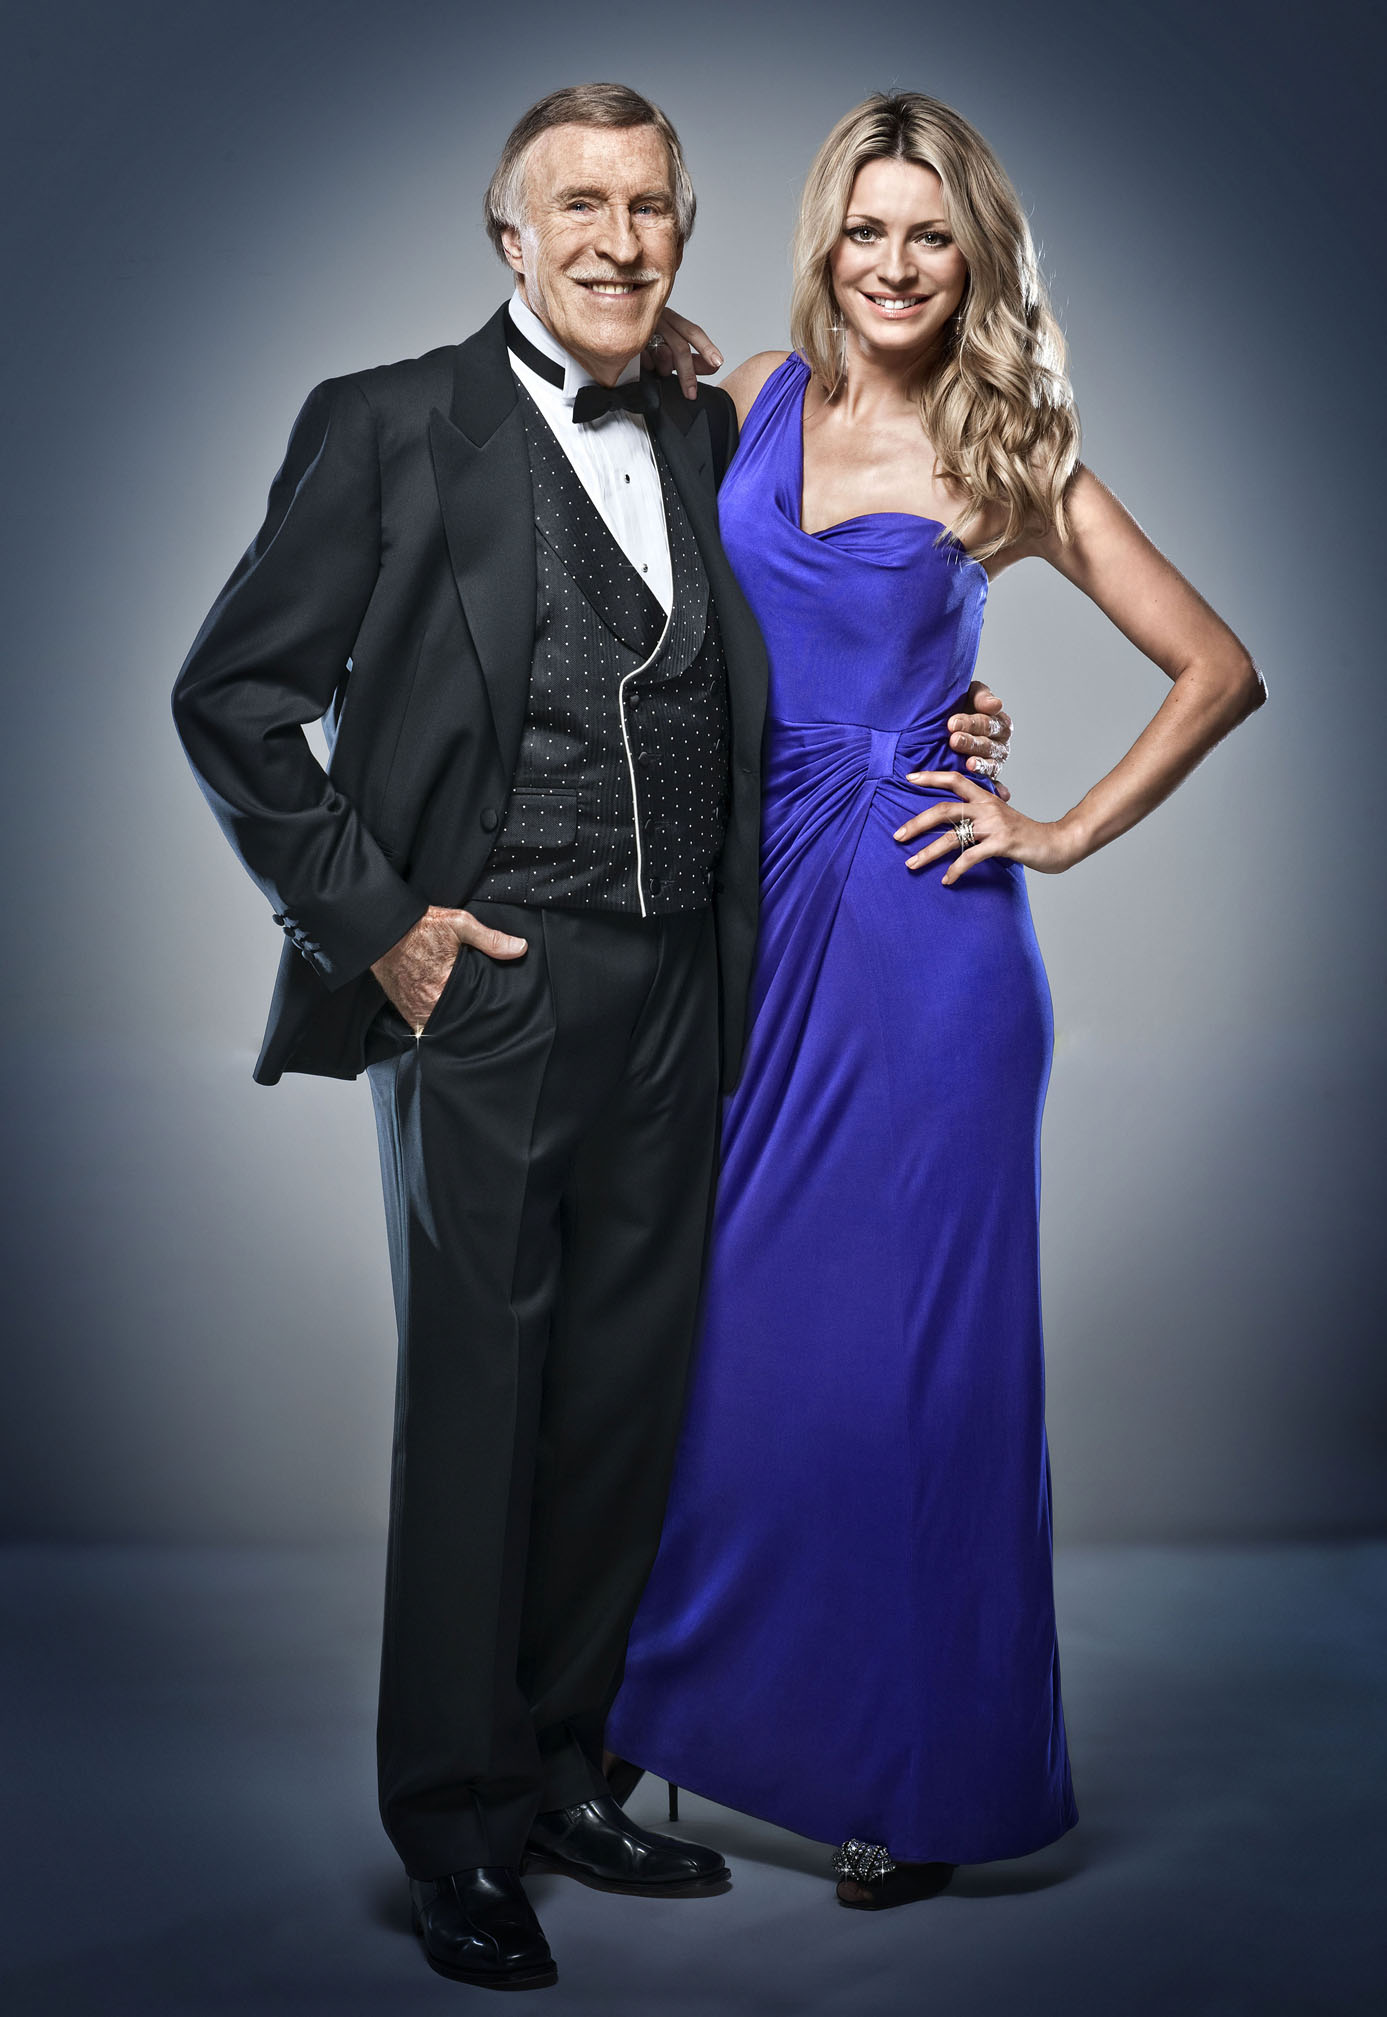 Bruce Forsyth and Tess Daly, the presenters of BBC show Strictly Come Dancing, 2010. Picture courtesy of the BBC.